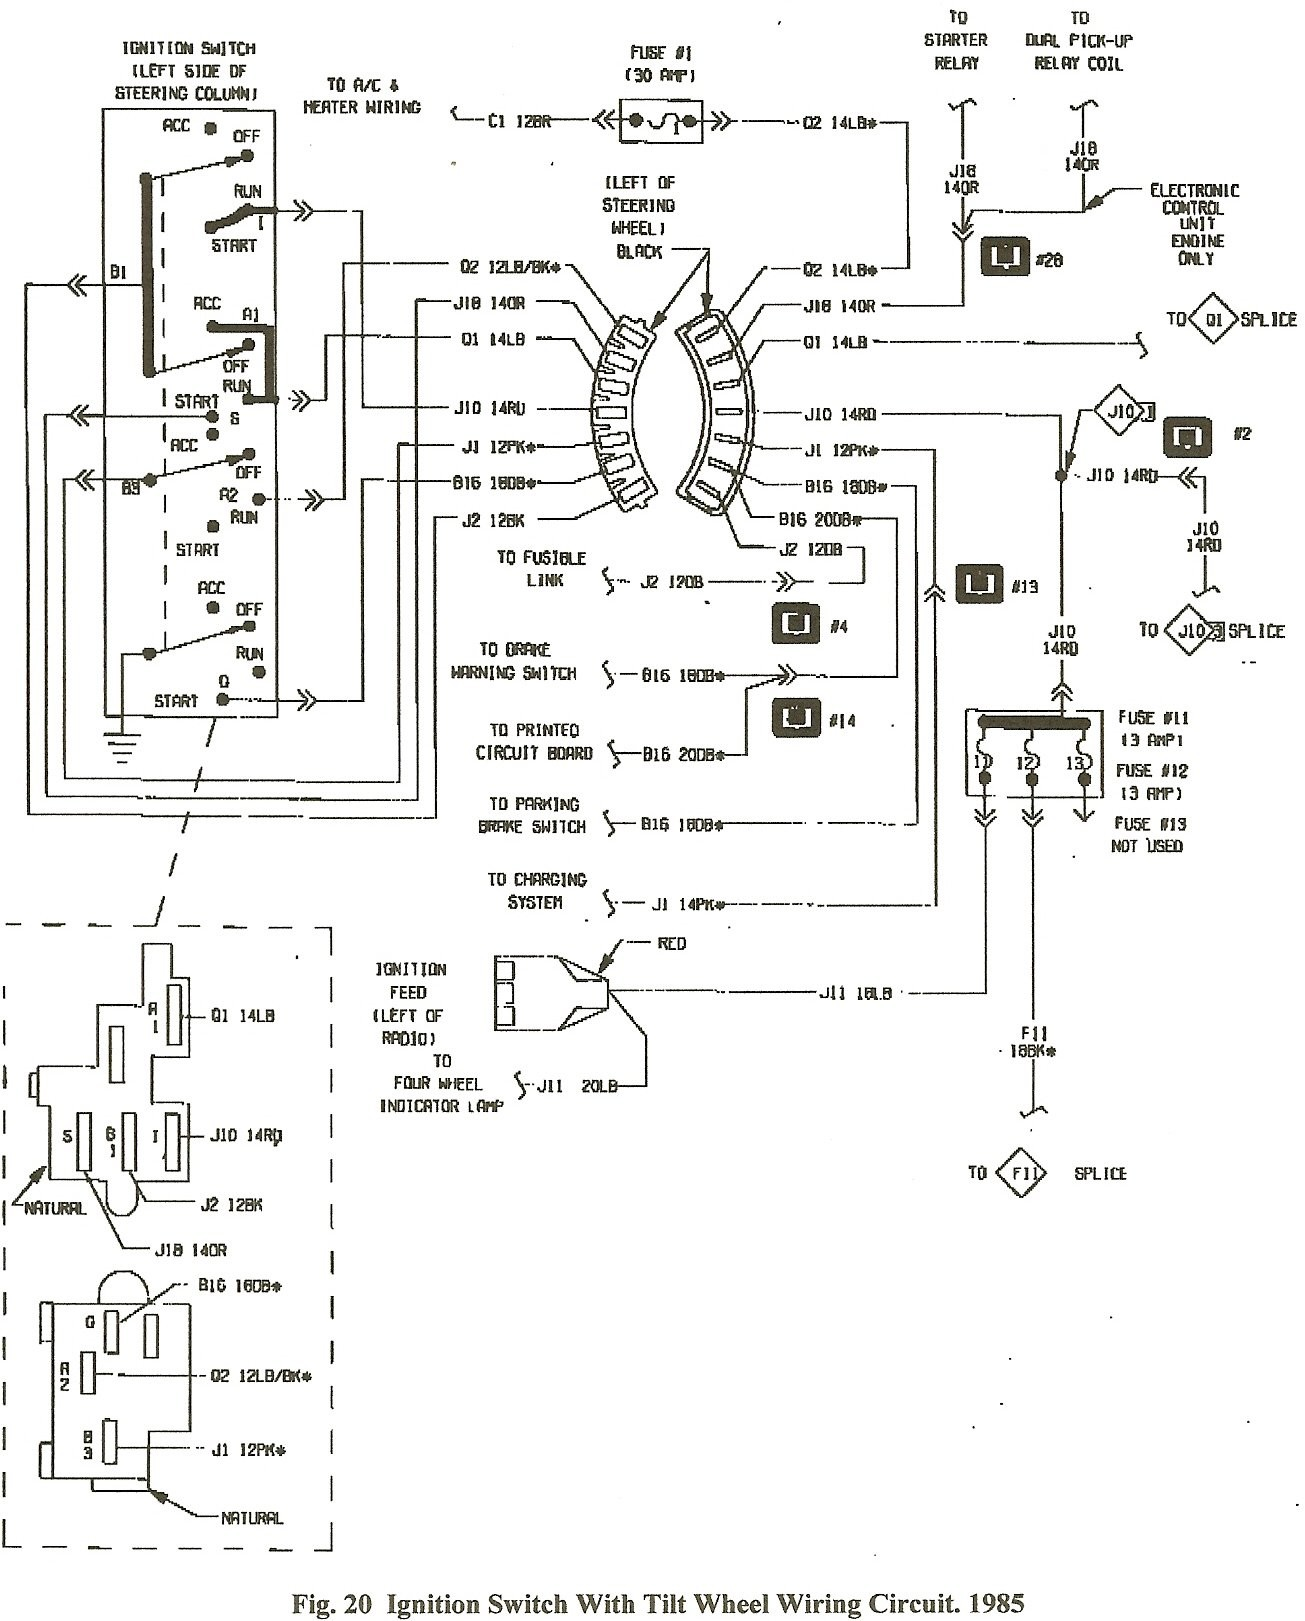 File Name: 92 Dakotum Wire Diagram